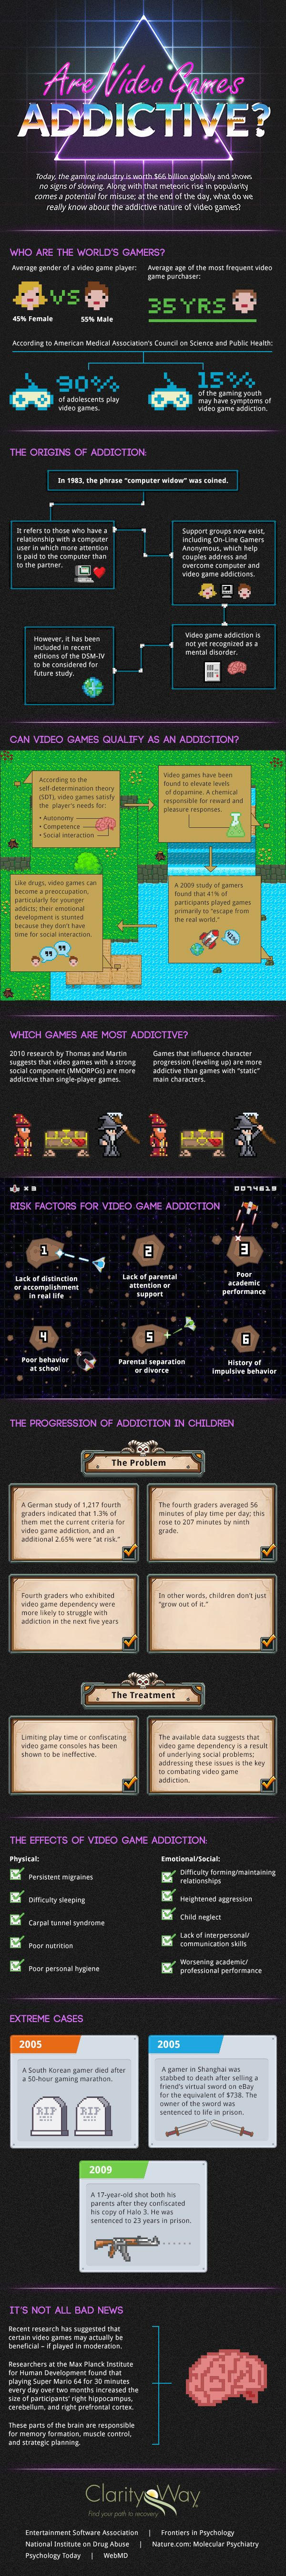 """Are Video Games Addictive?"" — Infographic — GeekTyrant"